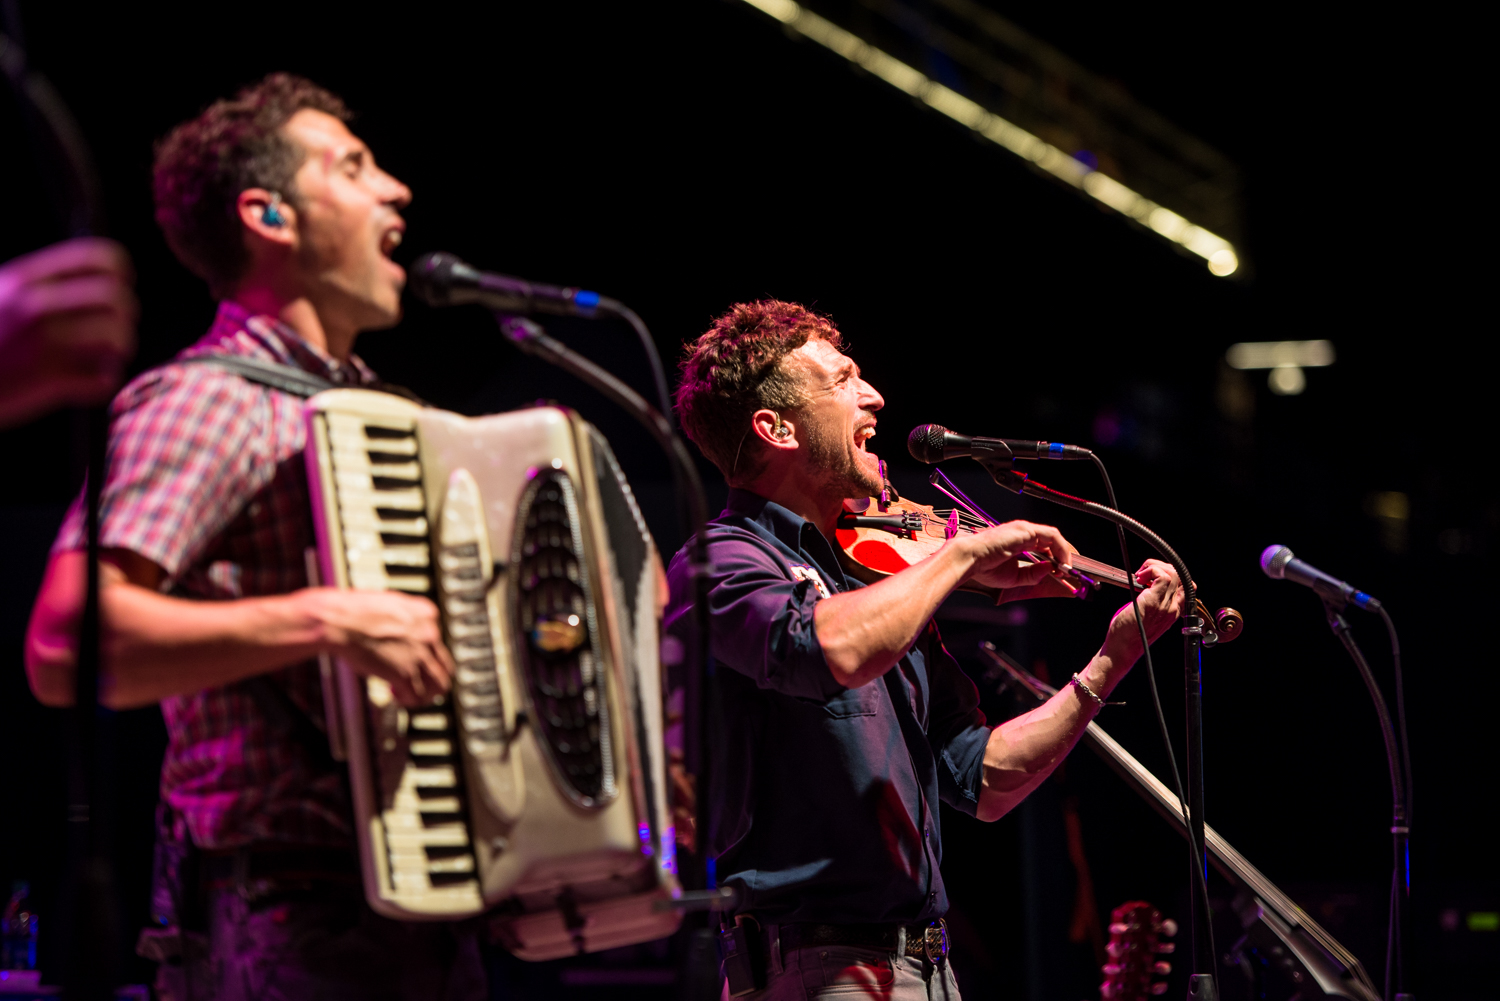 The band Scythian performing at Summer Music Festival  Musikfest, August 2016 in Bethlehem, Pennsylvania.  Americaplatz.